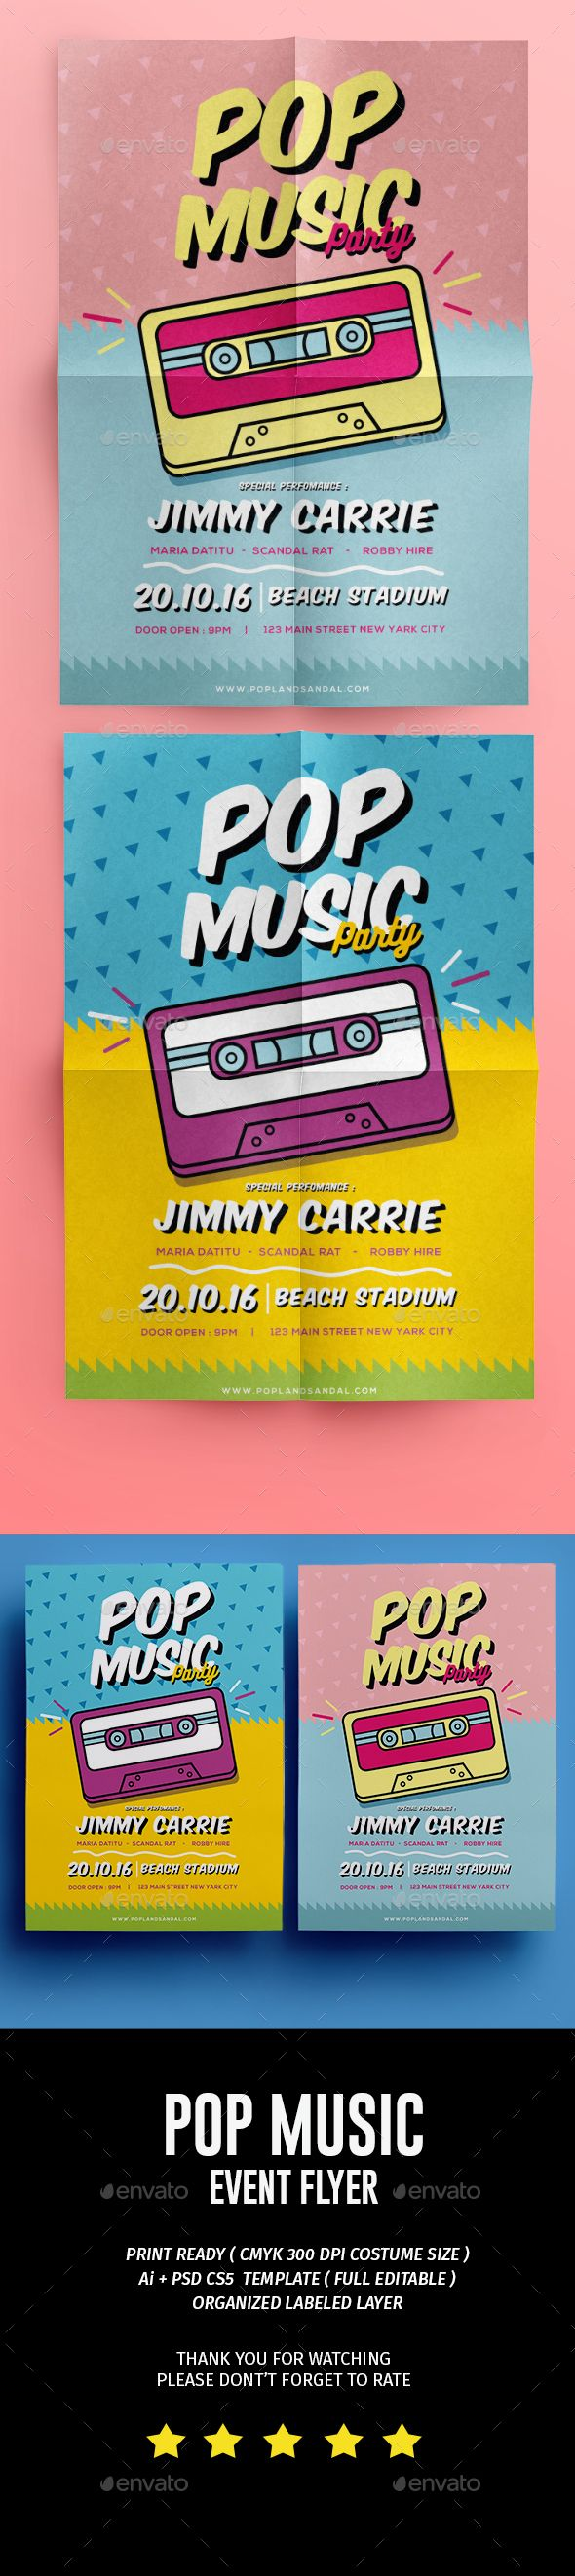 Pop Music Flyer Template PSD, AI Illustrator. Download here: graphicriver.net/.....